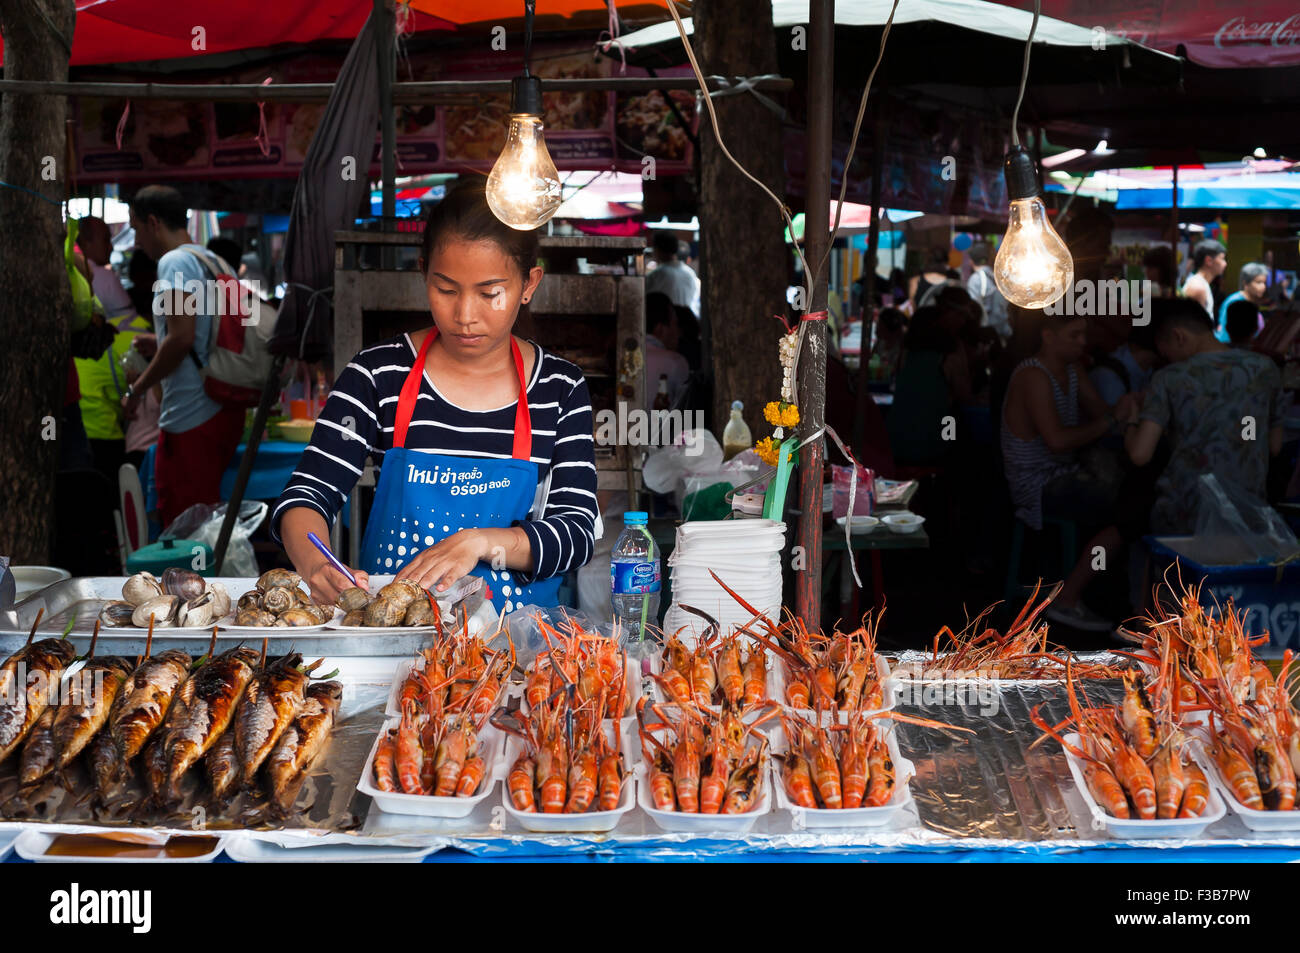 Seafood stall at Chatuchak Weekend Market, Bangkok - Stock Image